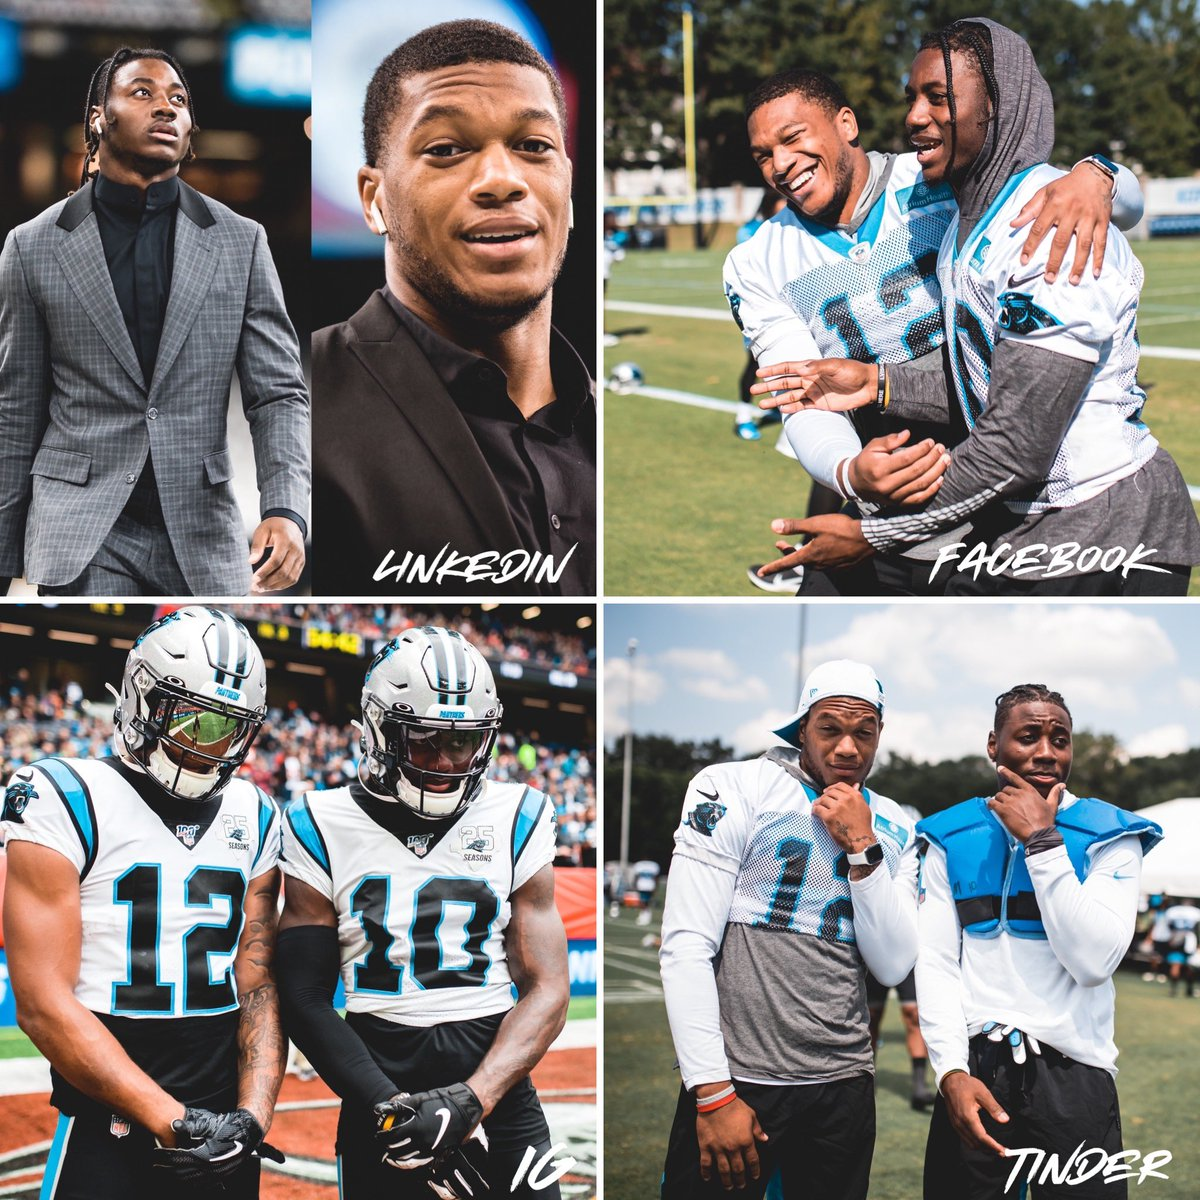 Carolina Panthers @Panthers